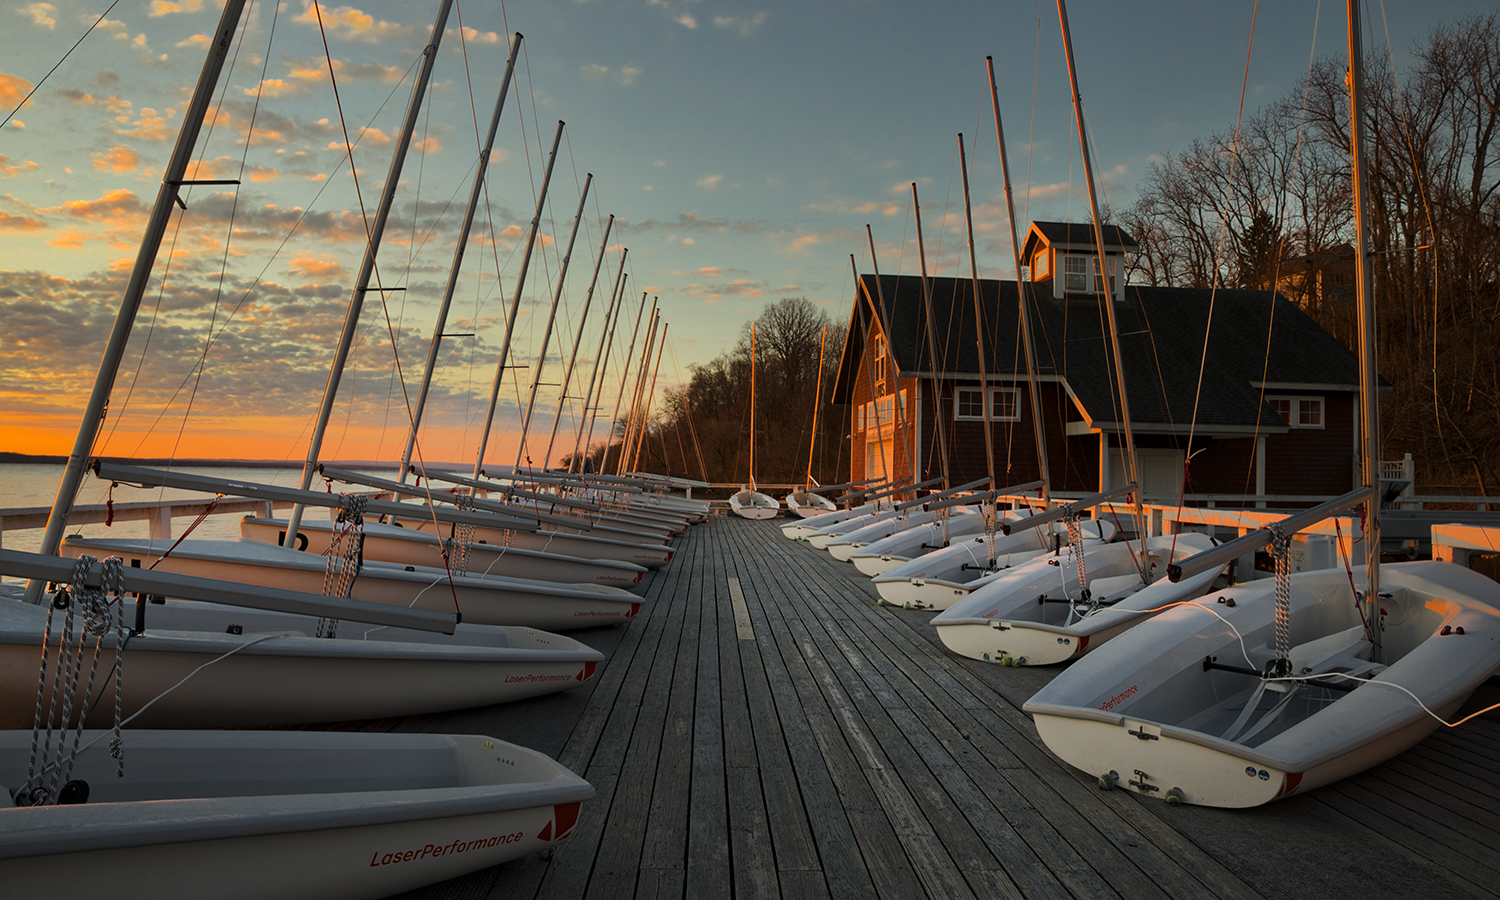 The sun rises over Bozzuto Boathouse.